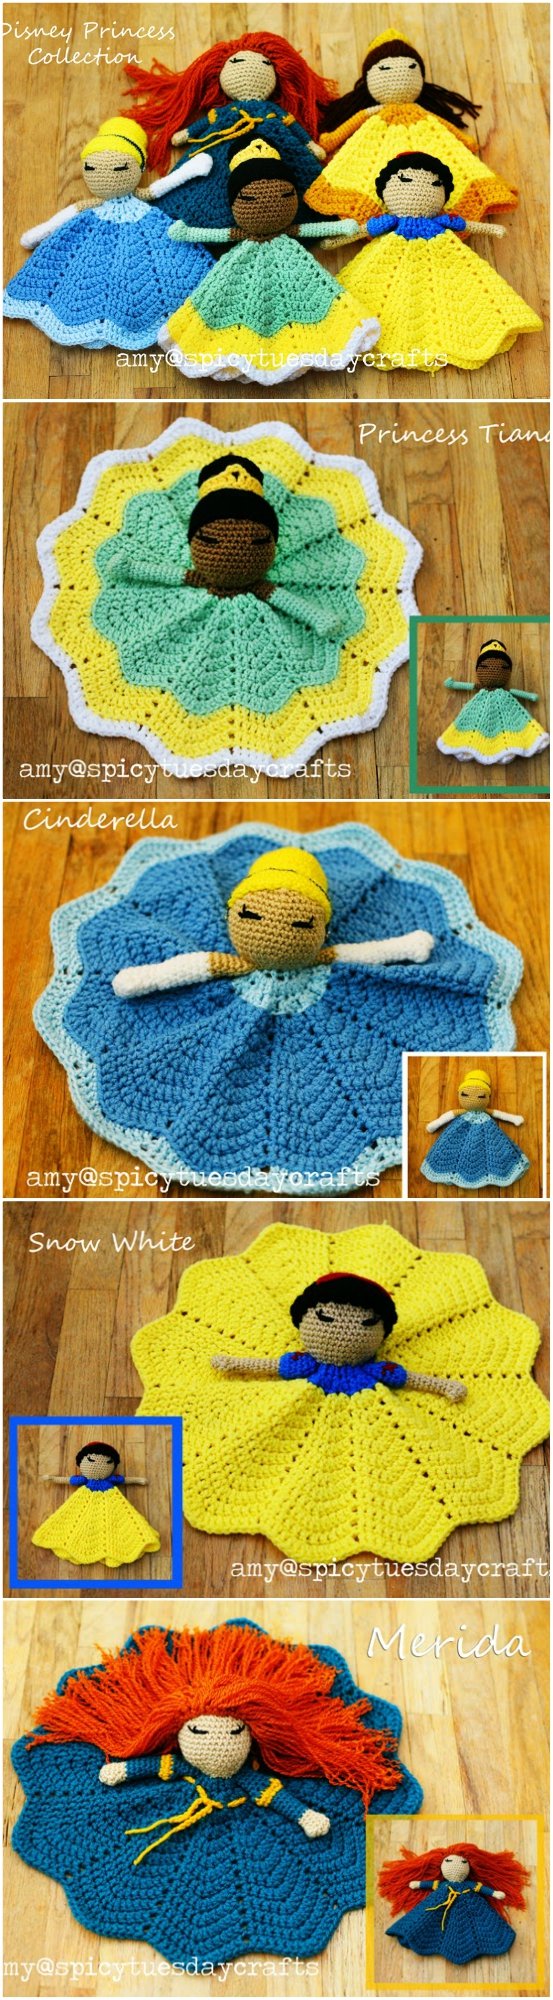 Crochet Kits: FROZEN and Princesses Amigurumi Patterns | Frozen ... | 2000x553